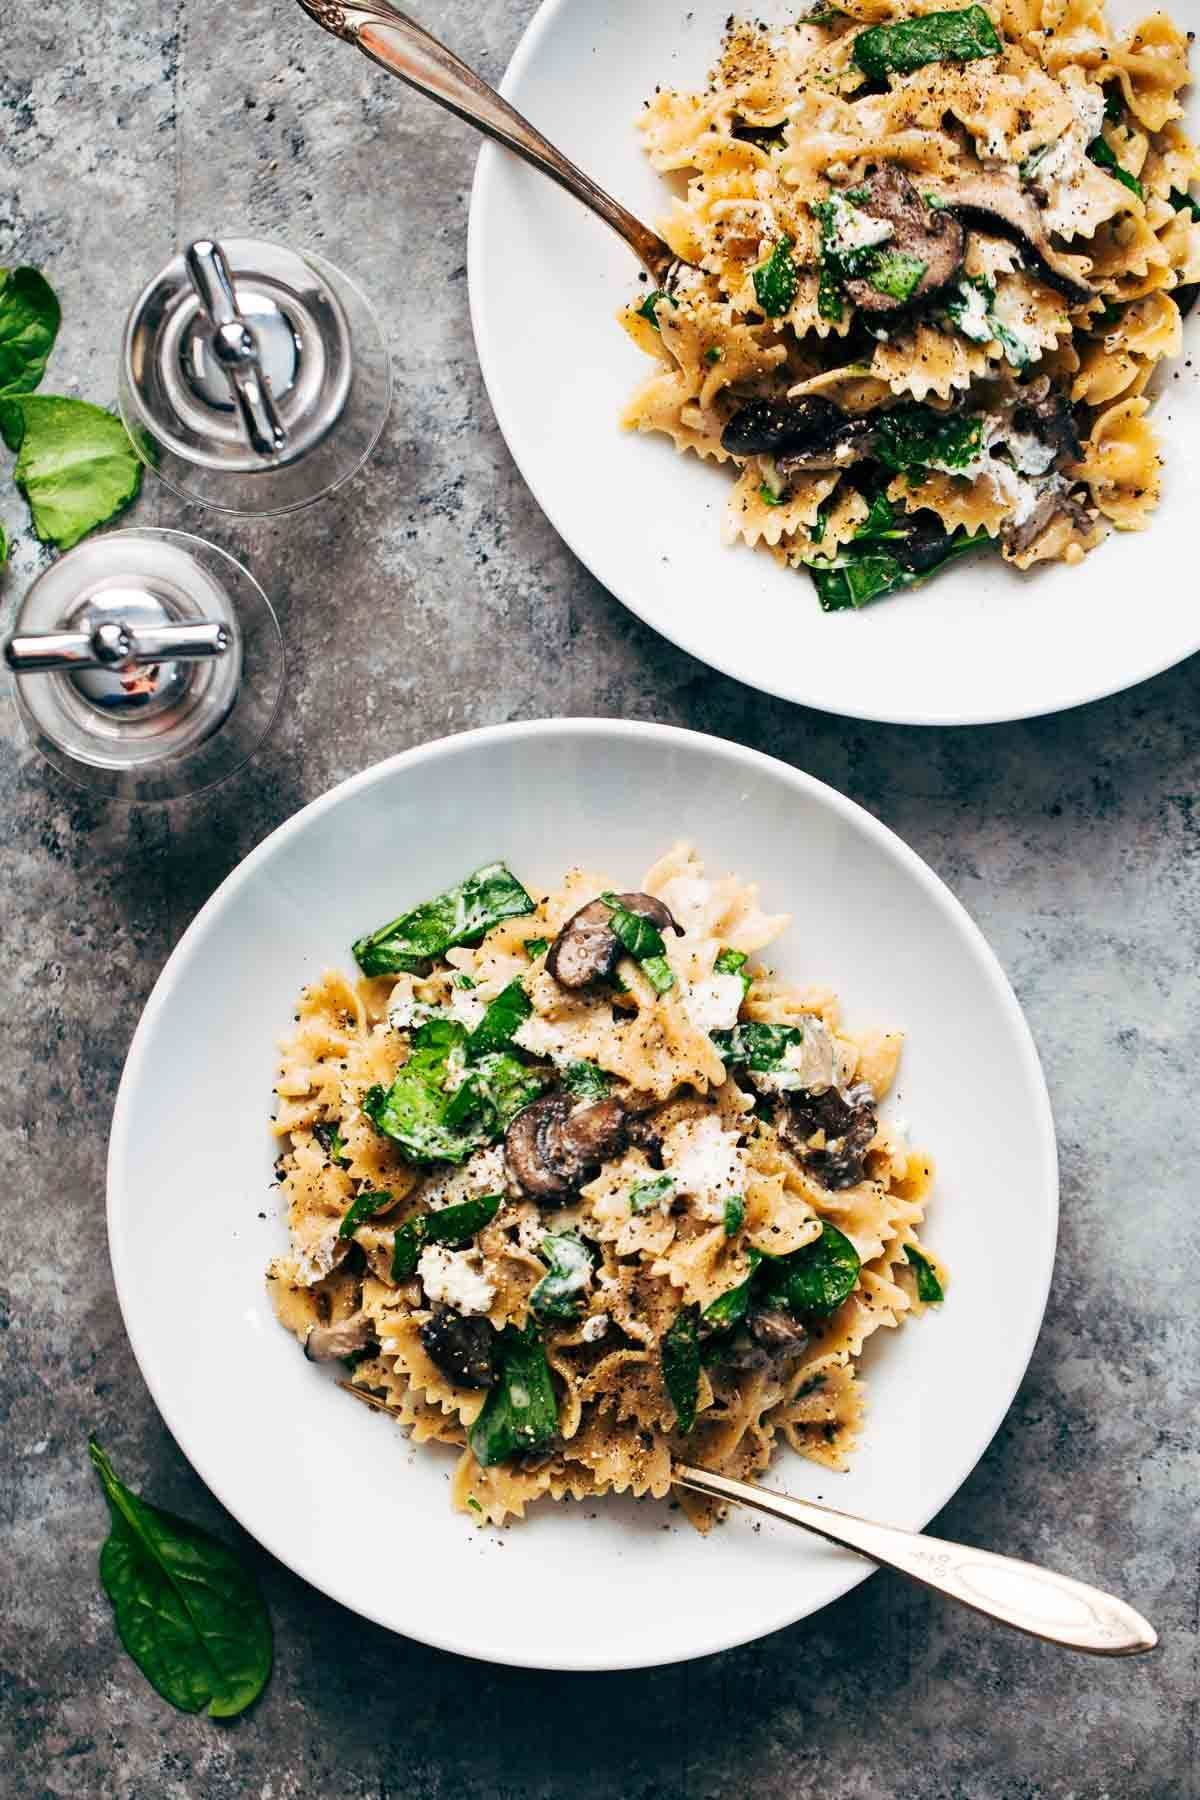 Date Night Mushroom Pasta With Goat Cheese Recipe Pinch Of Yum